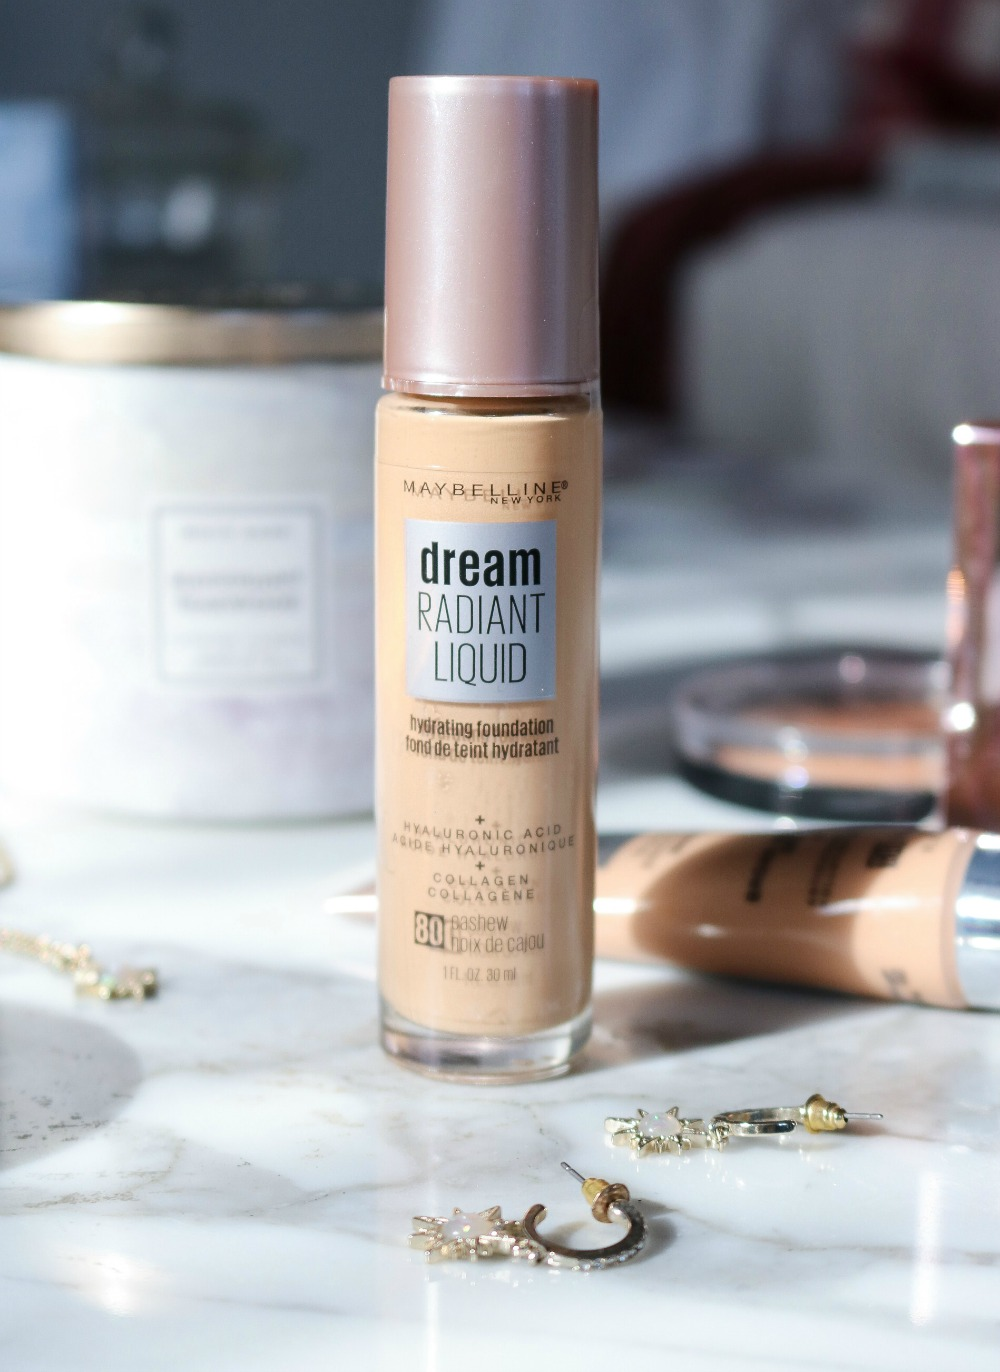 Maybelline Dream Radiant Liquid Foundation Review I Dreaminlace.com